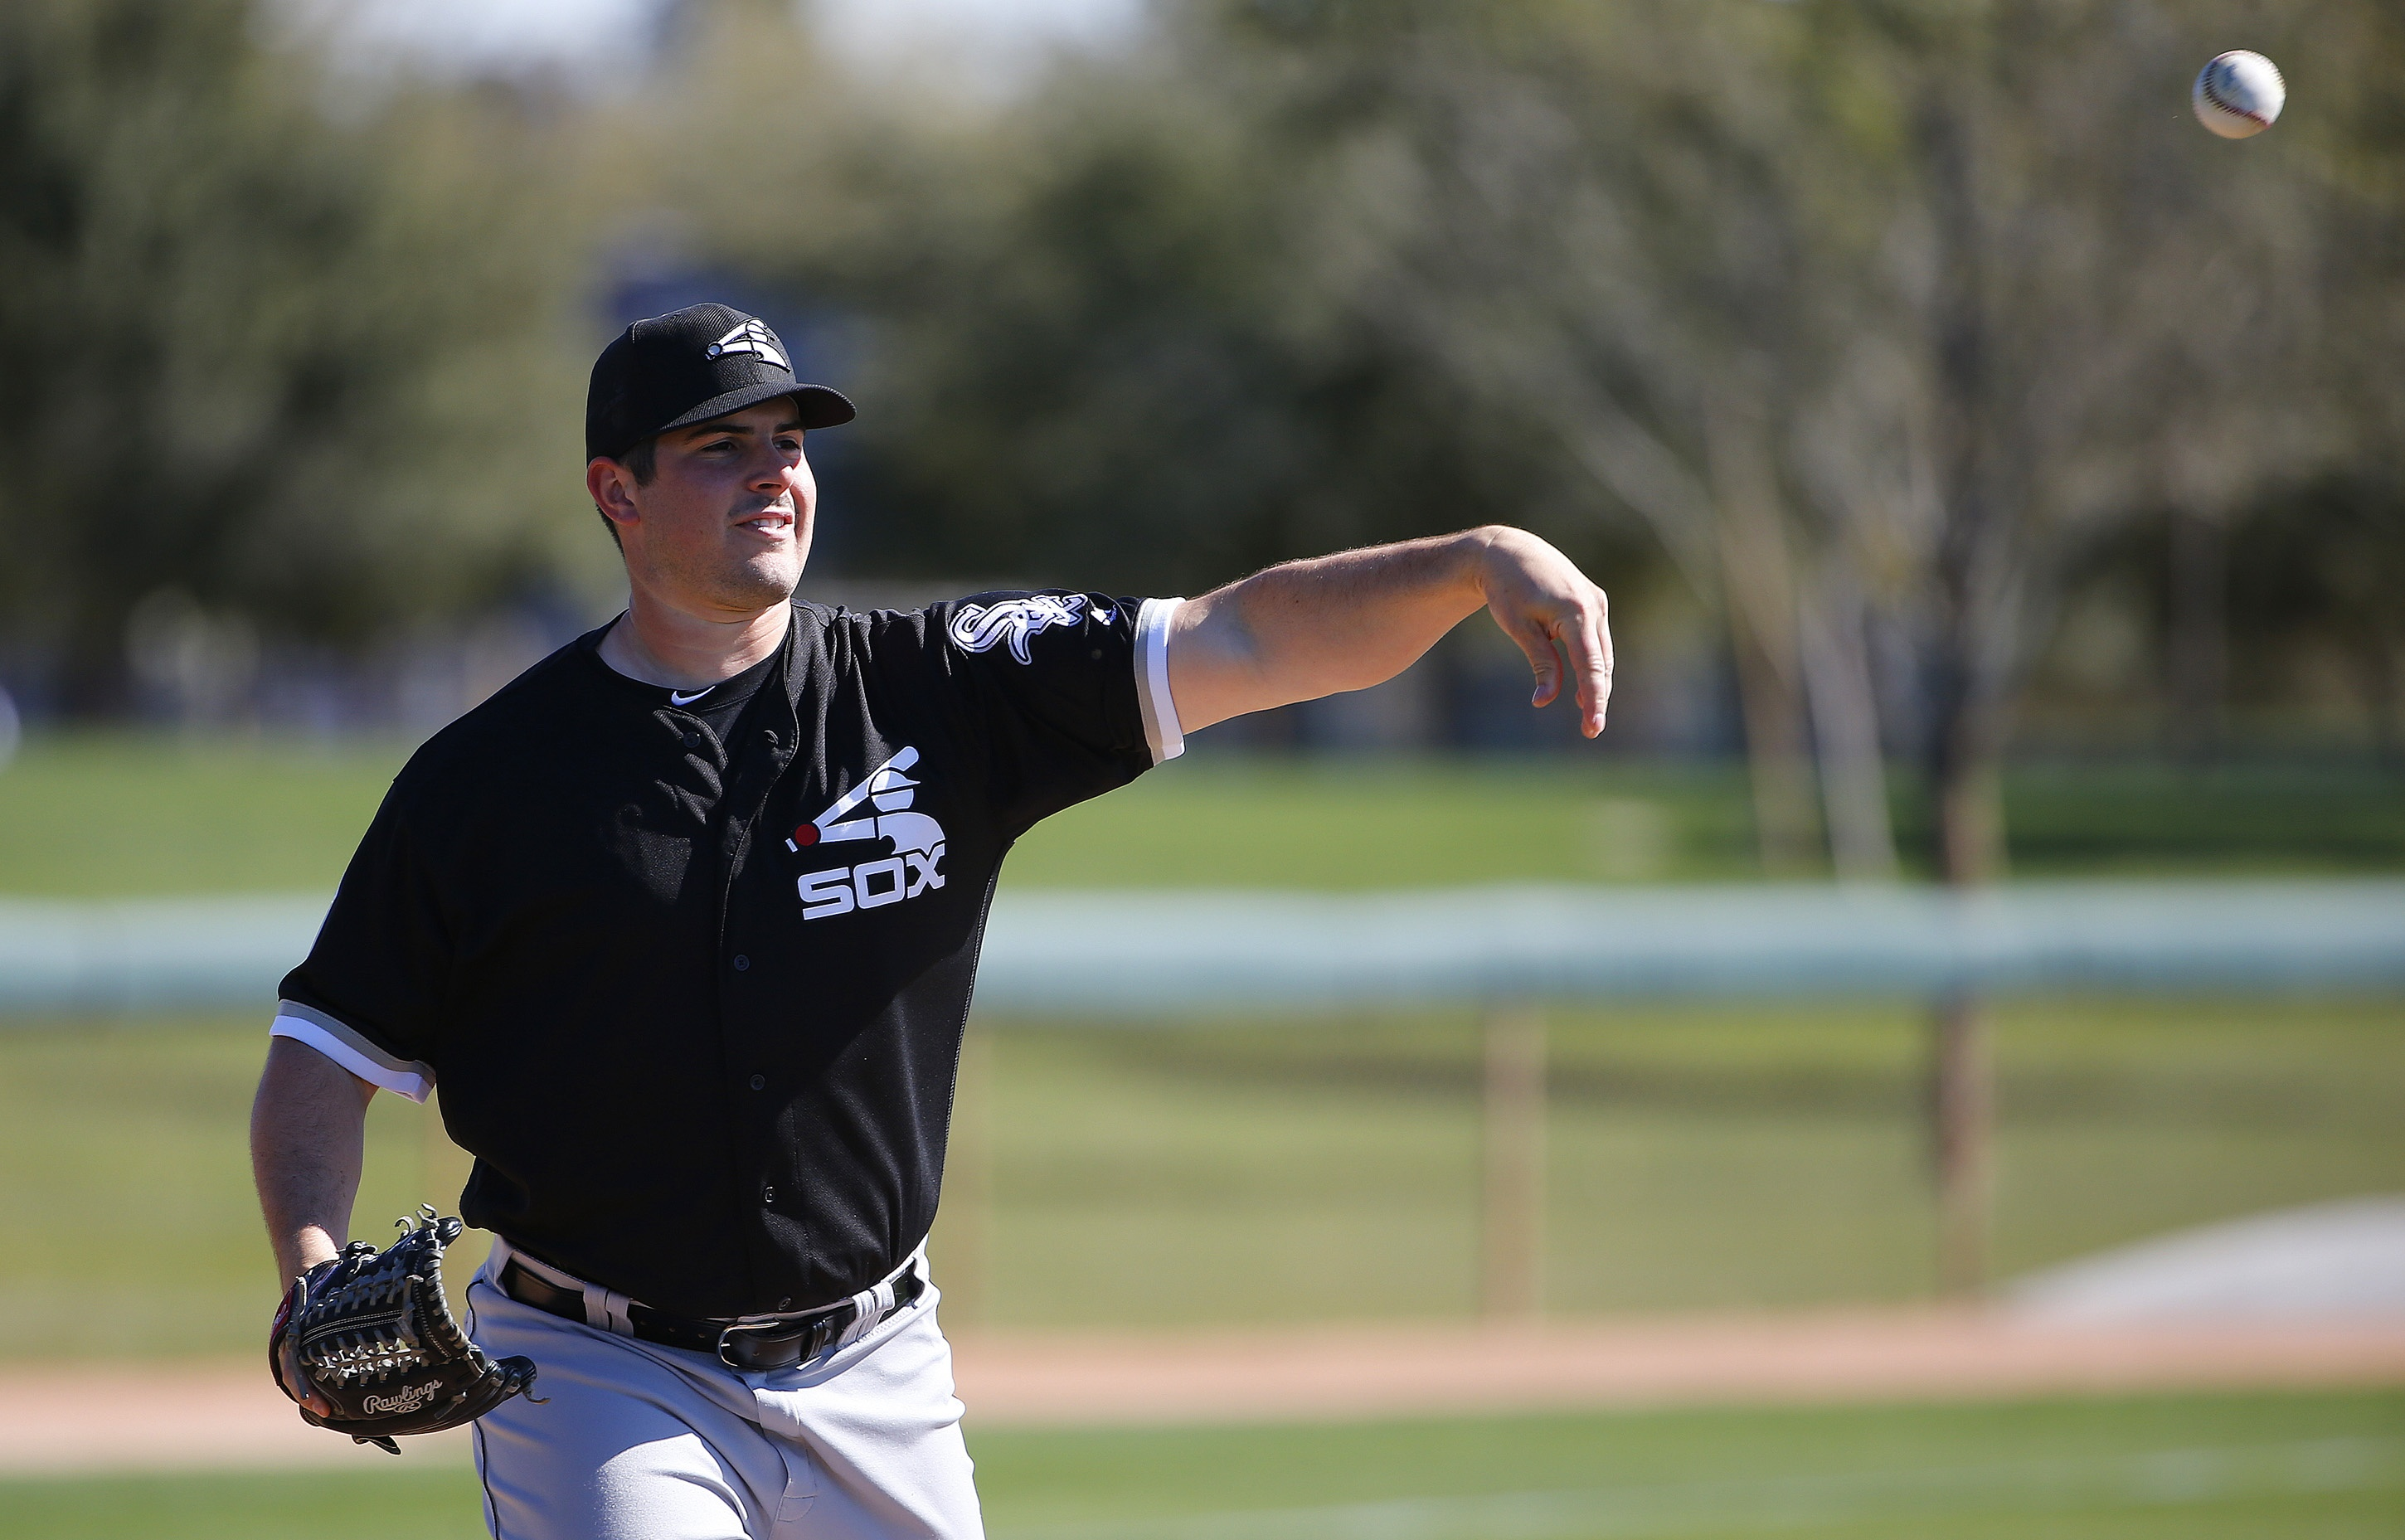 FILE - In this Feb. 24, 2016, file photo, Chicago White Sox's Carlos Rodon throws to first base during a spring training baseball workout, in Glendale, Ariz. One of four lefties in the White Sox rotation, Rodon looks to refine things and improve on a 9-6,